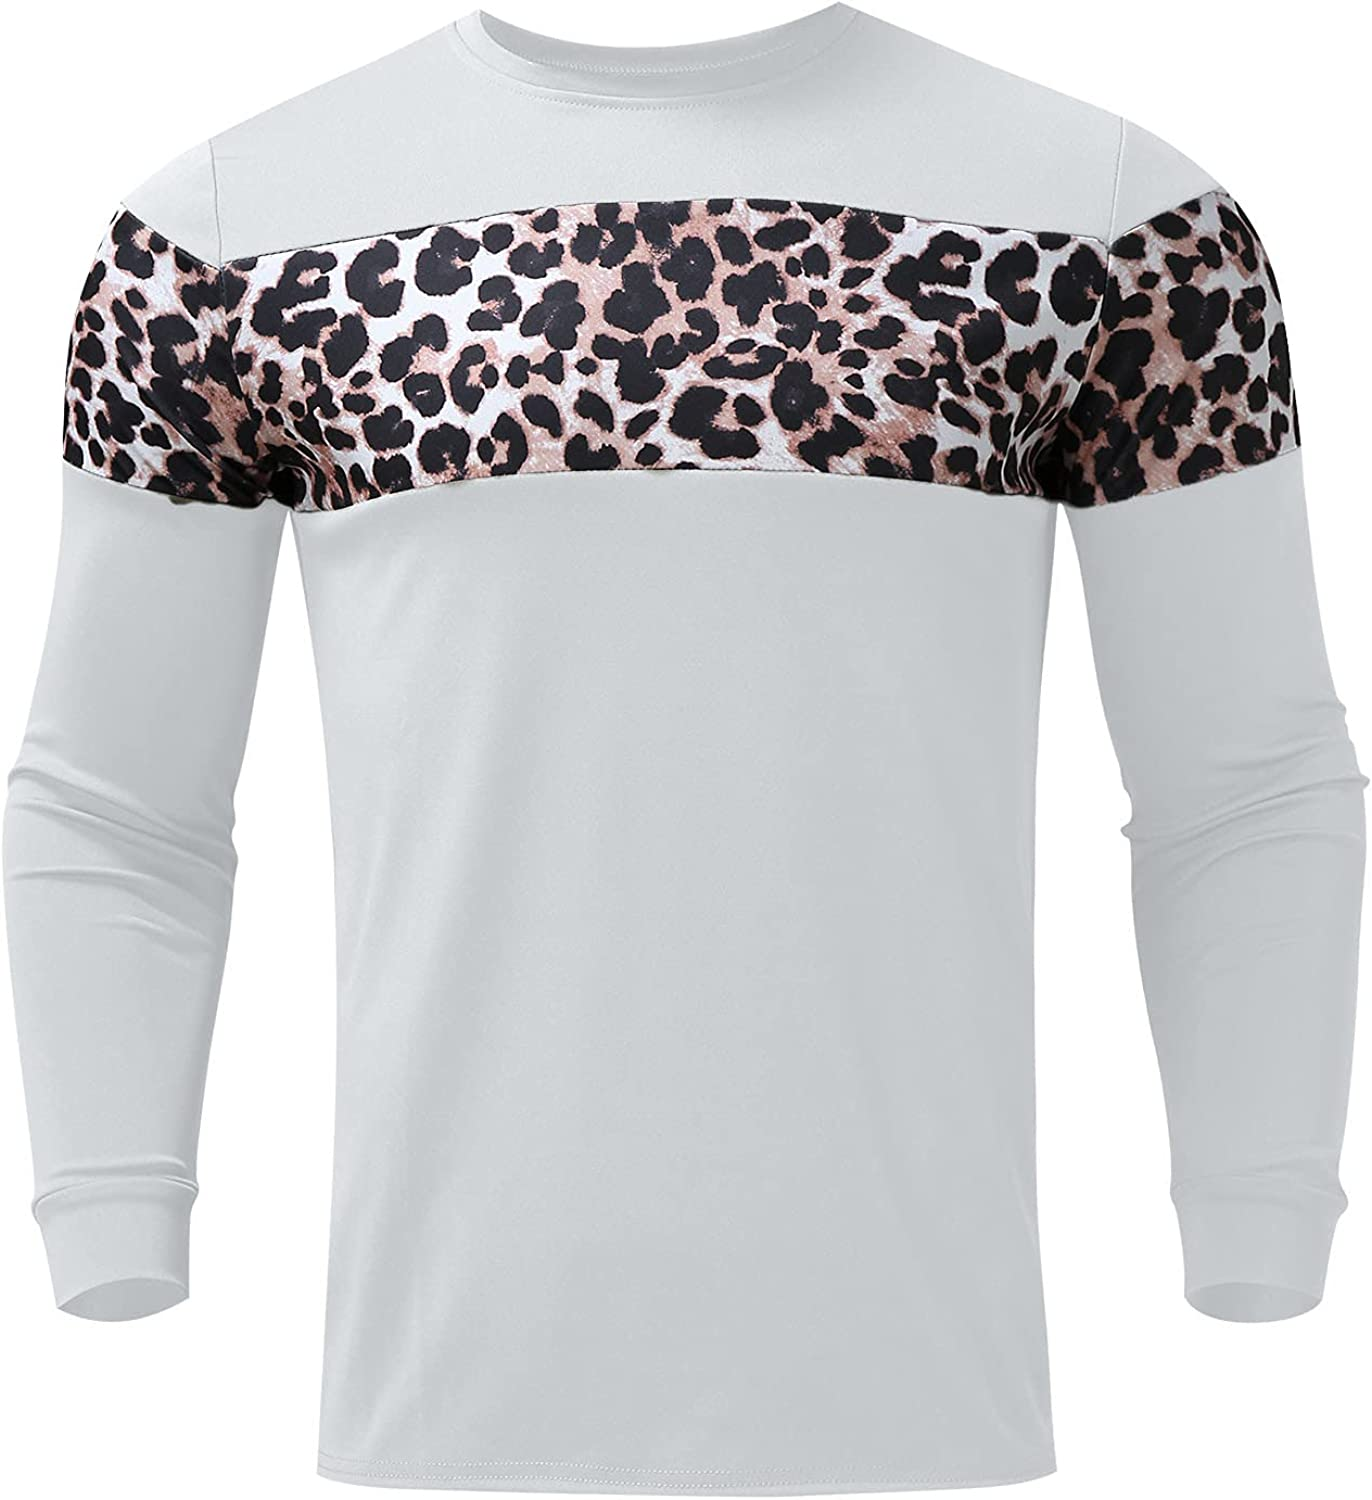 Men's Casual Crewneck Pullover Long Sleeve Printed Leopard Stitching Casual Top Blouse